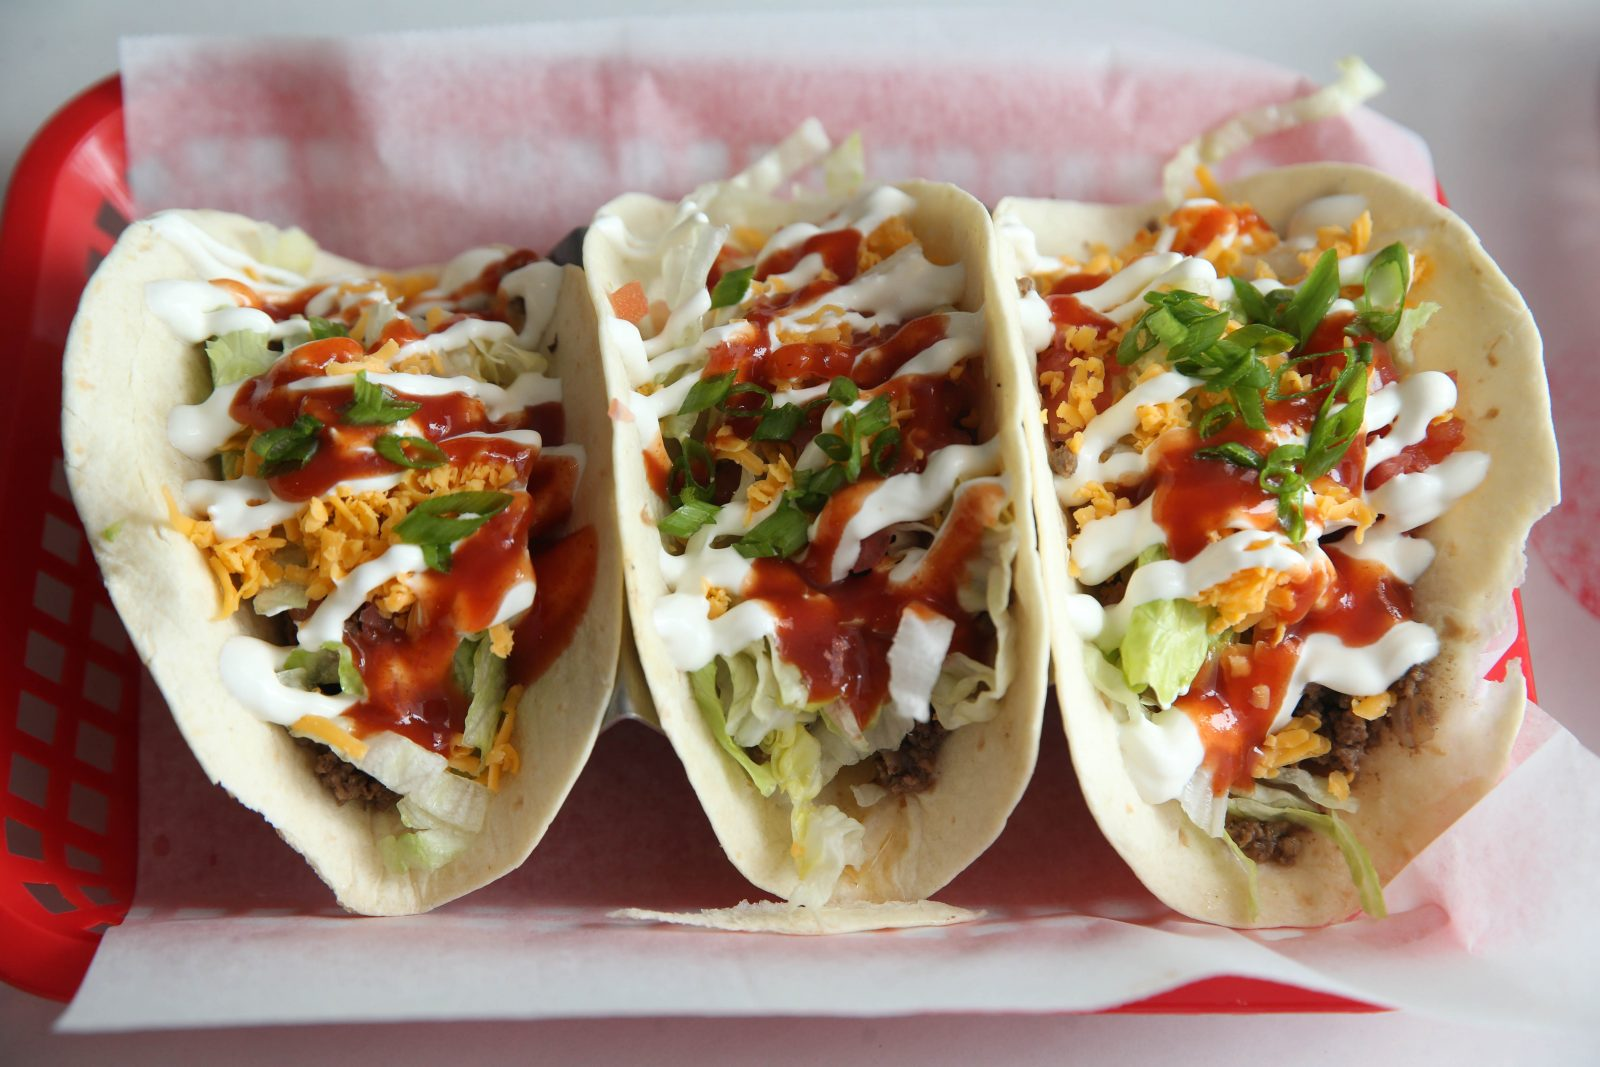 The mix-and-match three-taco lunch special is $7 at Cantina 62 in Lackawanna. (Sharon Cantillon/Buffalo News)